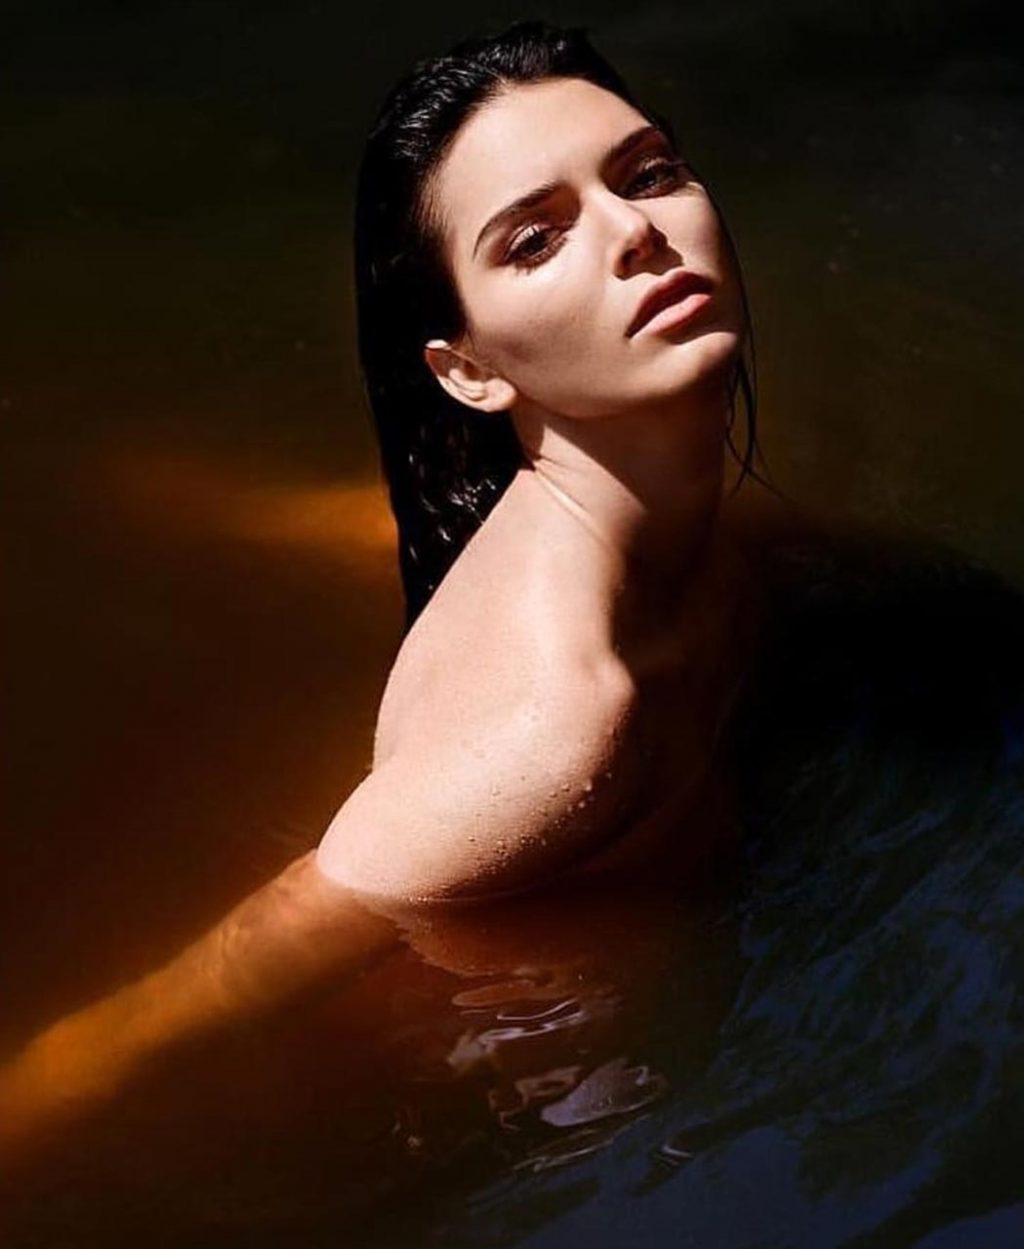 porn nude Kendall jenner